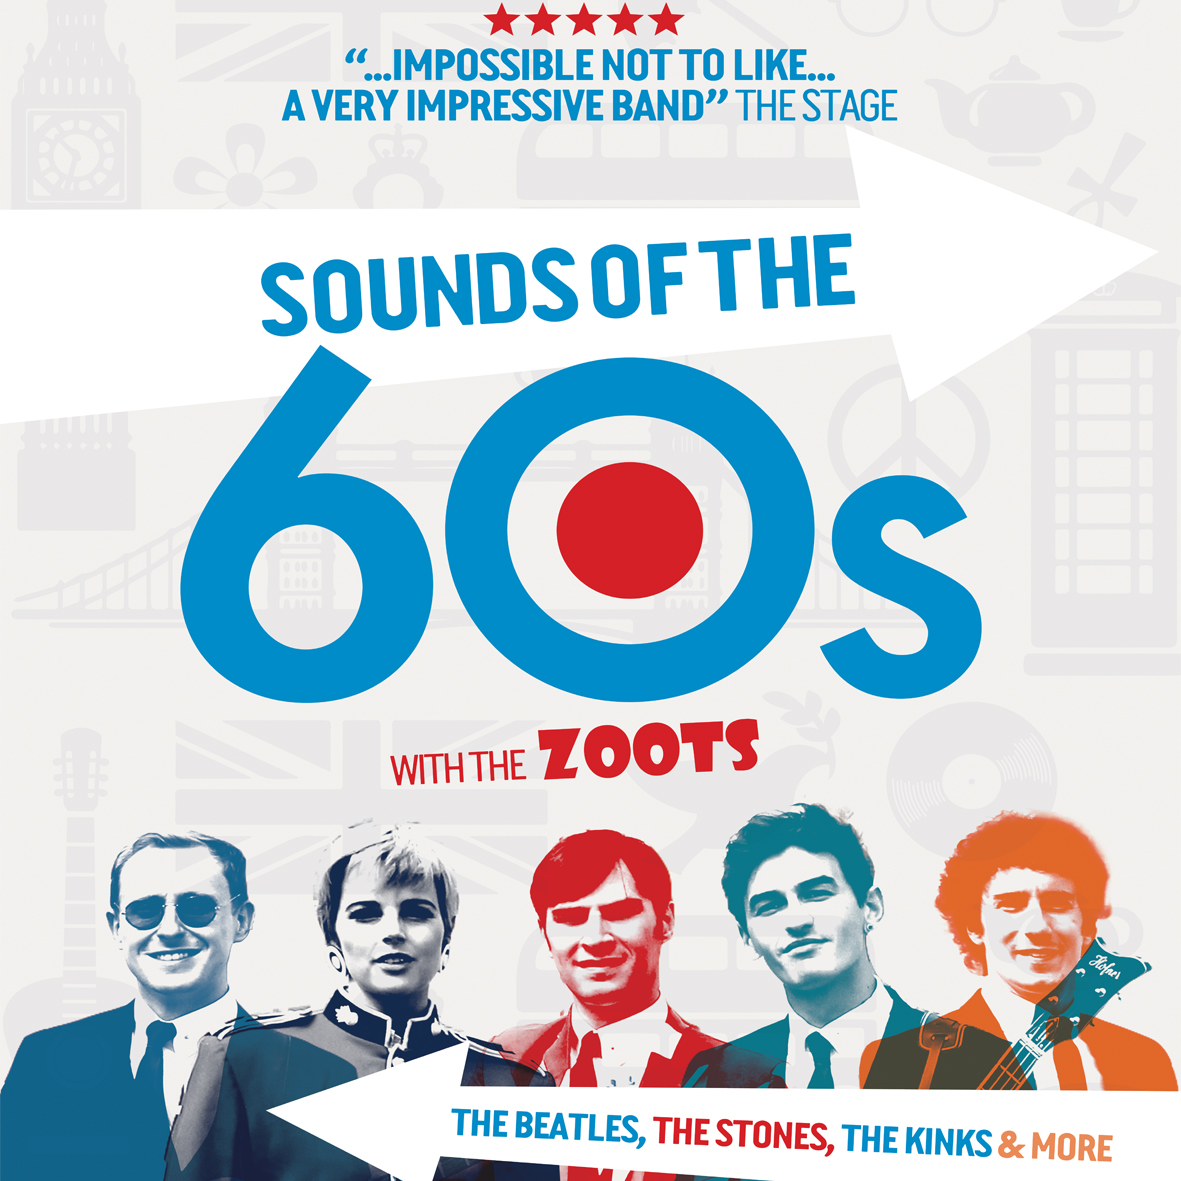 Sounds of the 60s @ Kings Hall, Ilkley